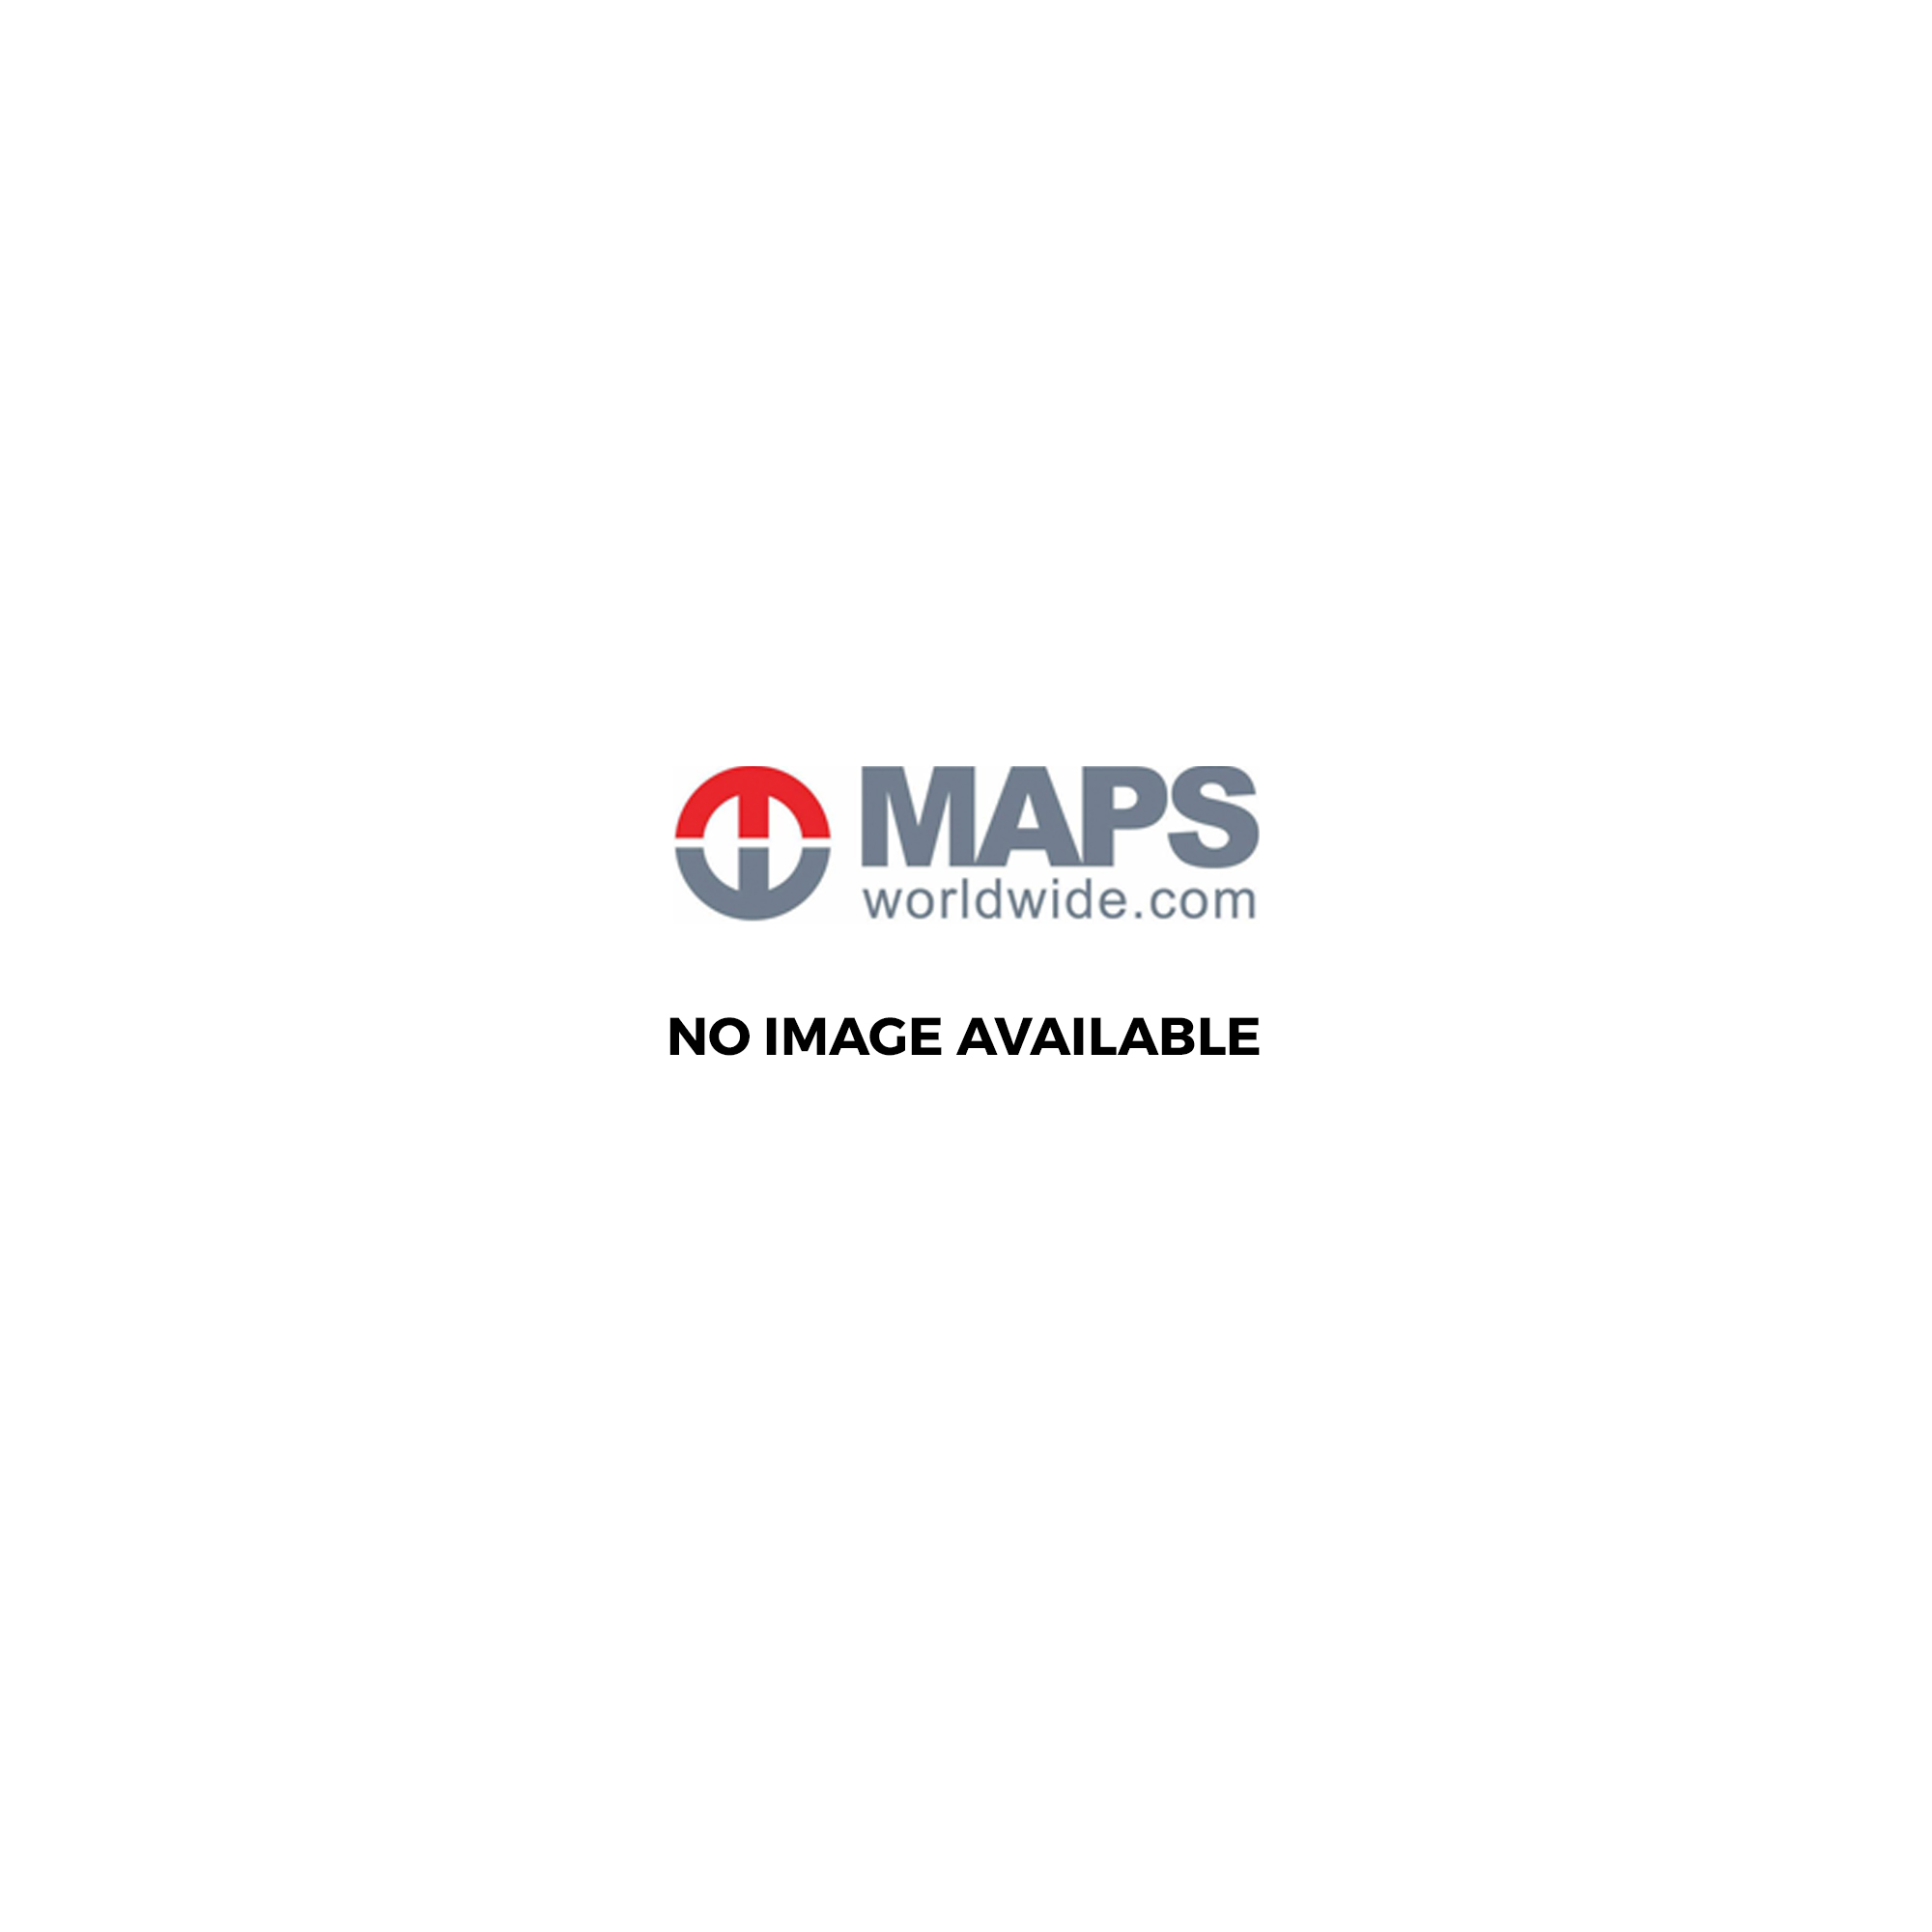 Norway road map 2 central europe from maps worldwide uk norway road map 2 central publicscrutiny Choice Image